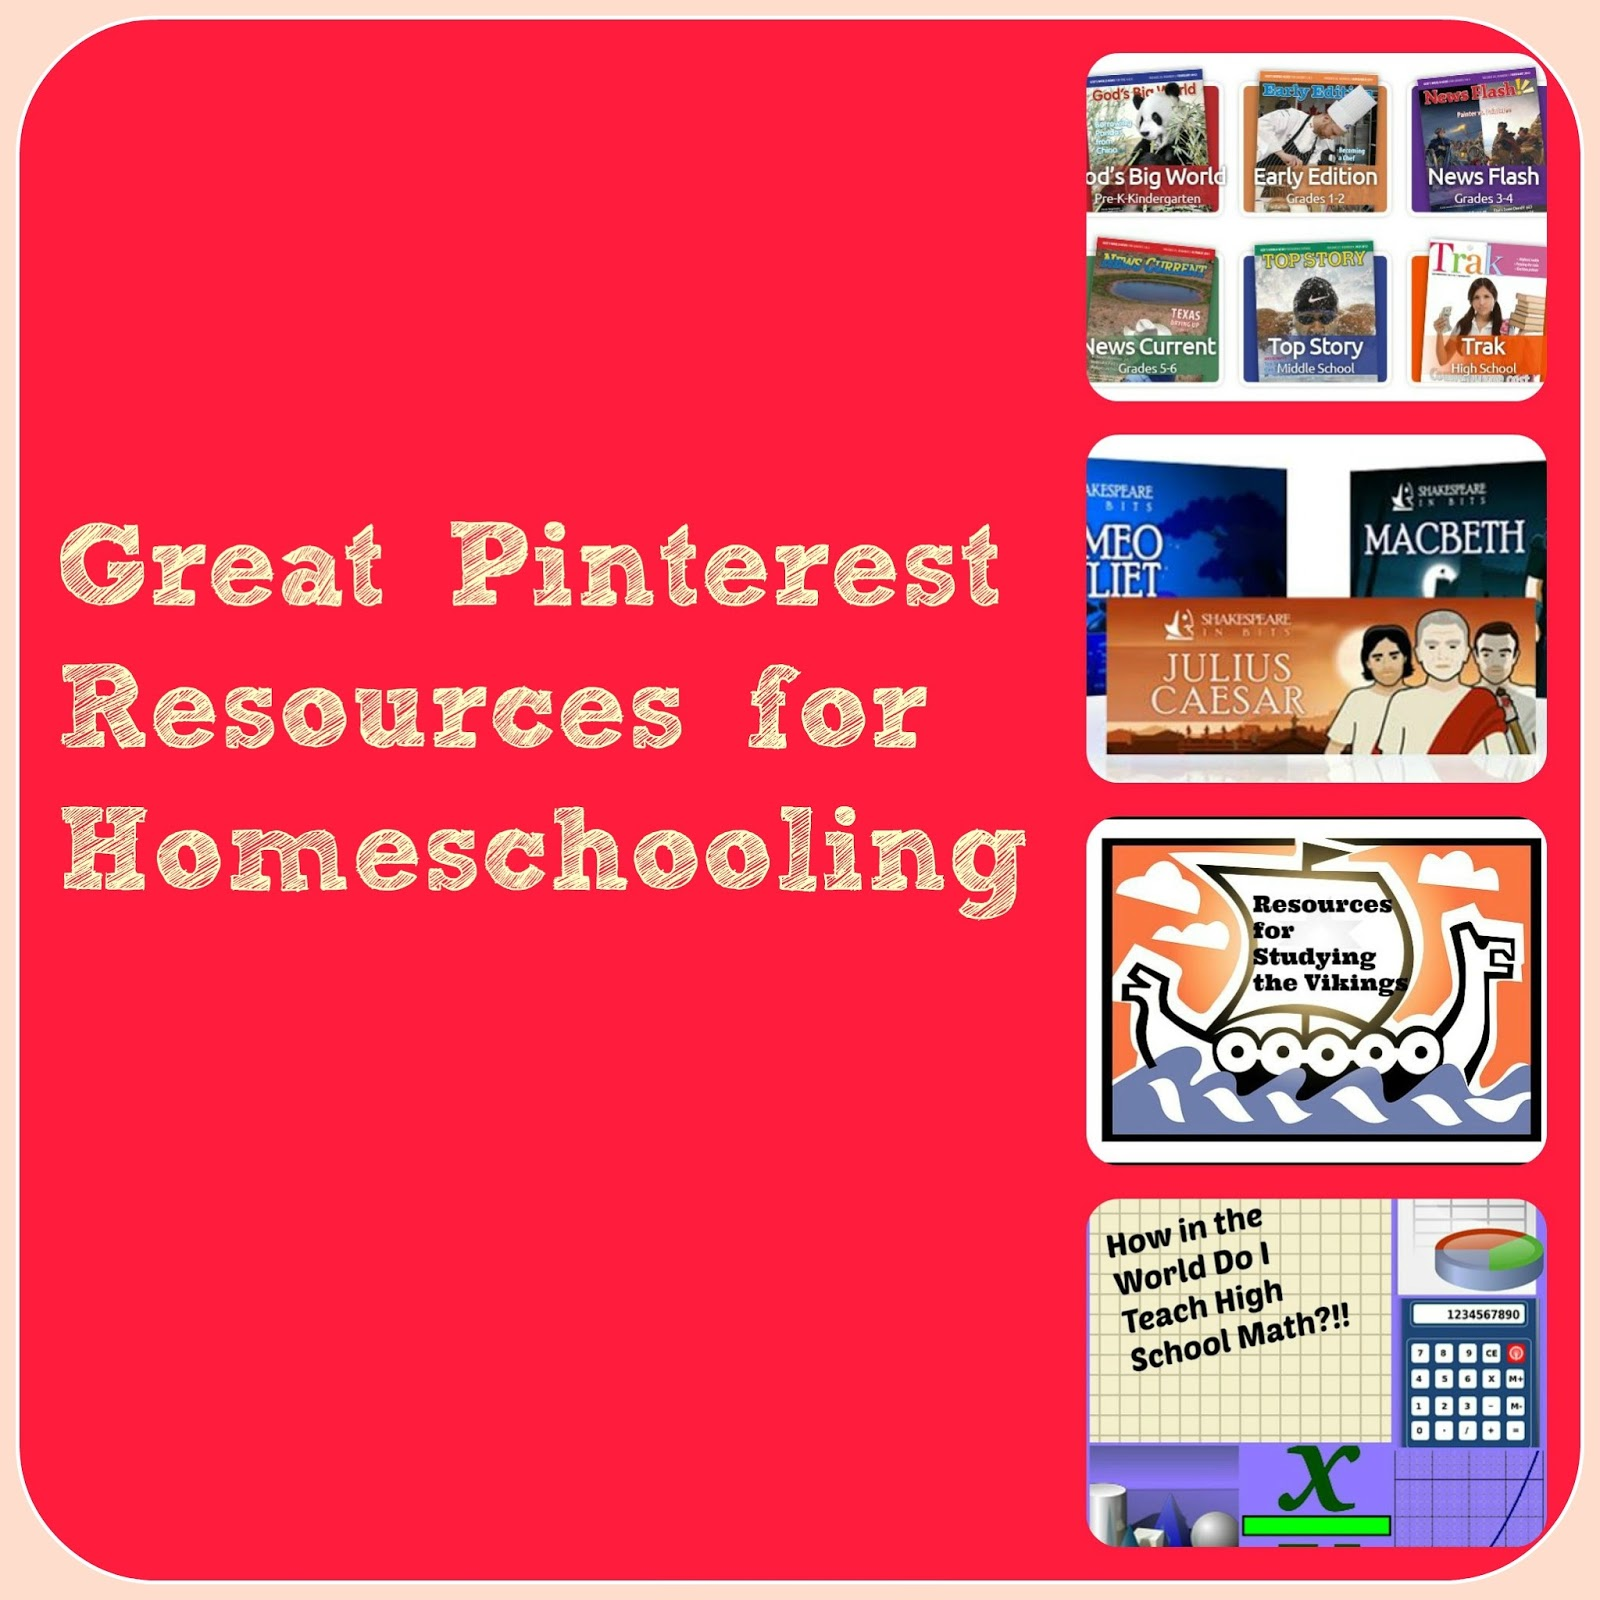 Some Great Pinterest Resources For Homeschooling As We Walk Along